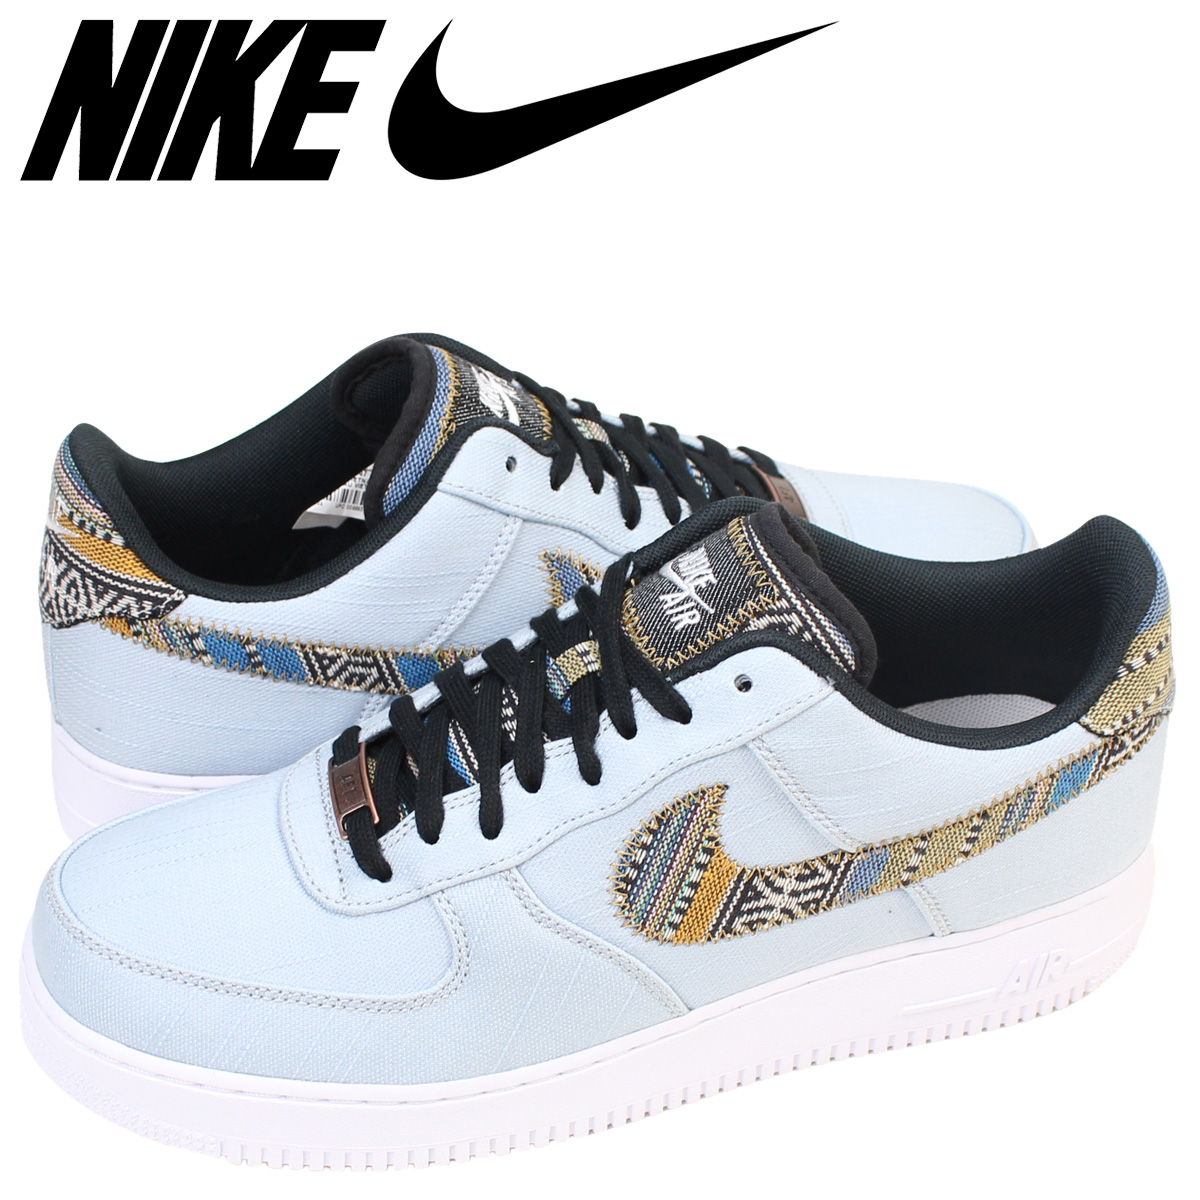 newest 66705 01d64 Nike NIKE air force 1 low sneakers AIR FORCE 1 LOW 07 LV8 LT men  718,152-407 shoes blue